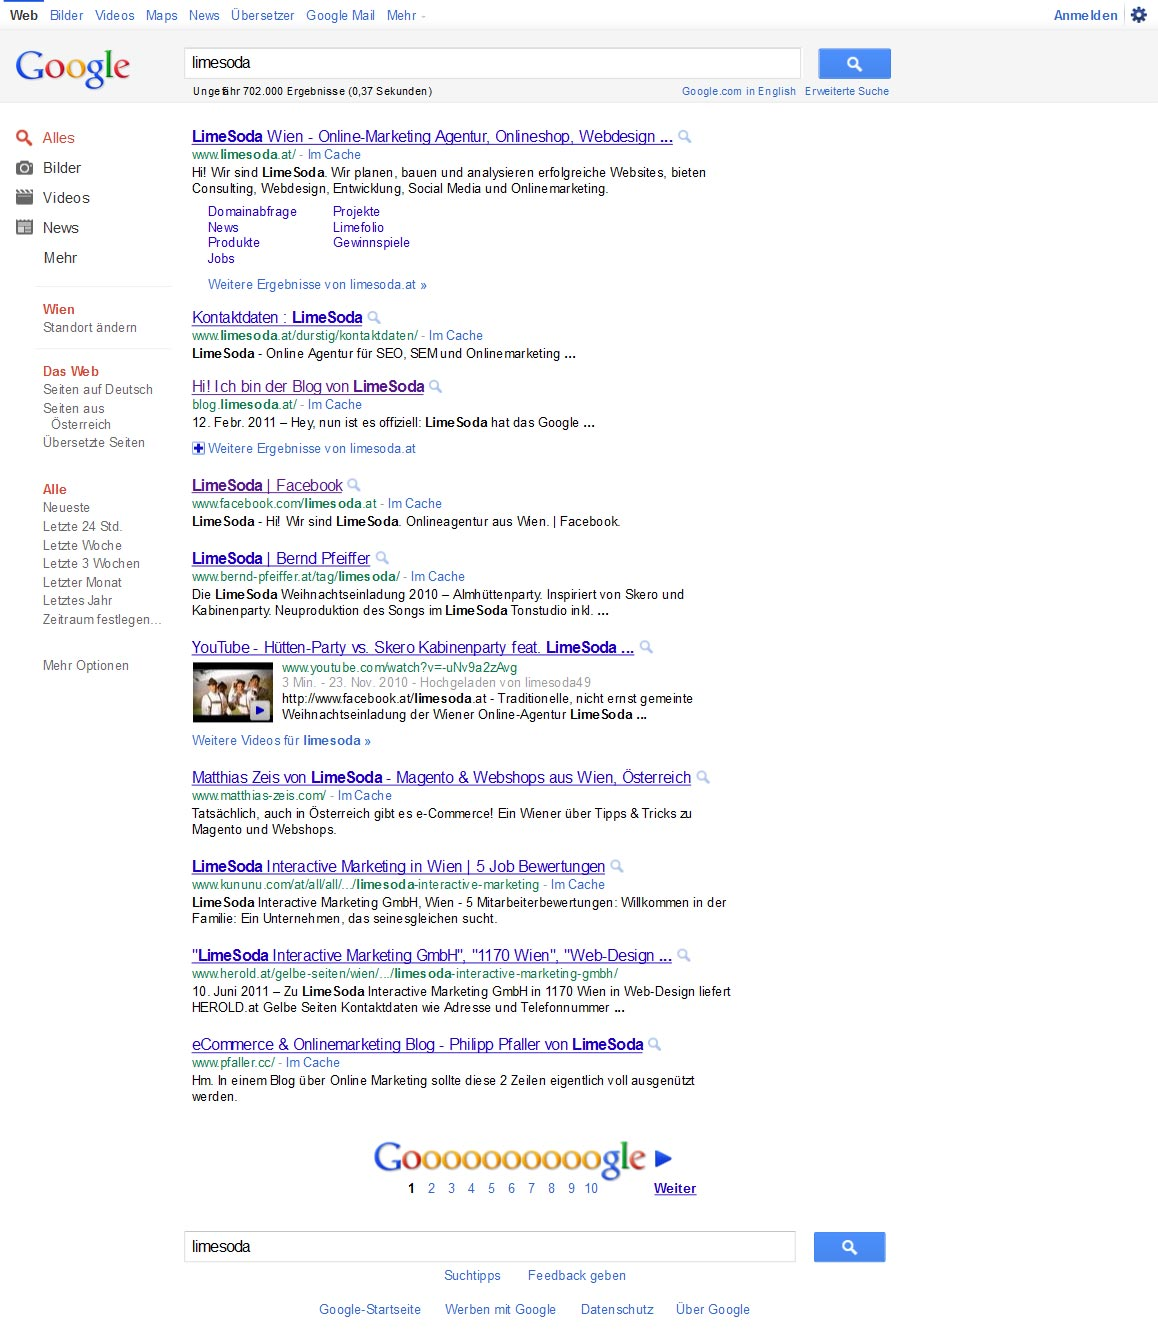 Neues Google-Layout (Juni 2011)